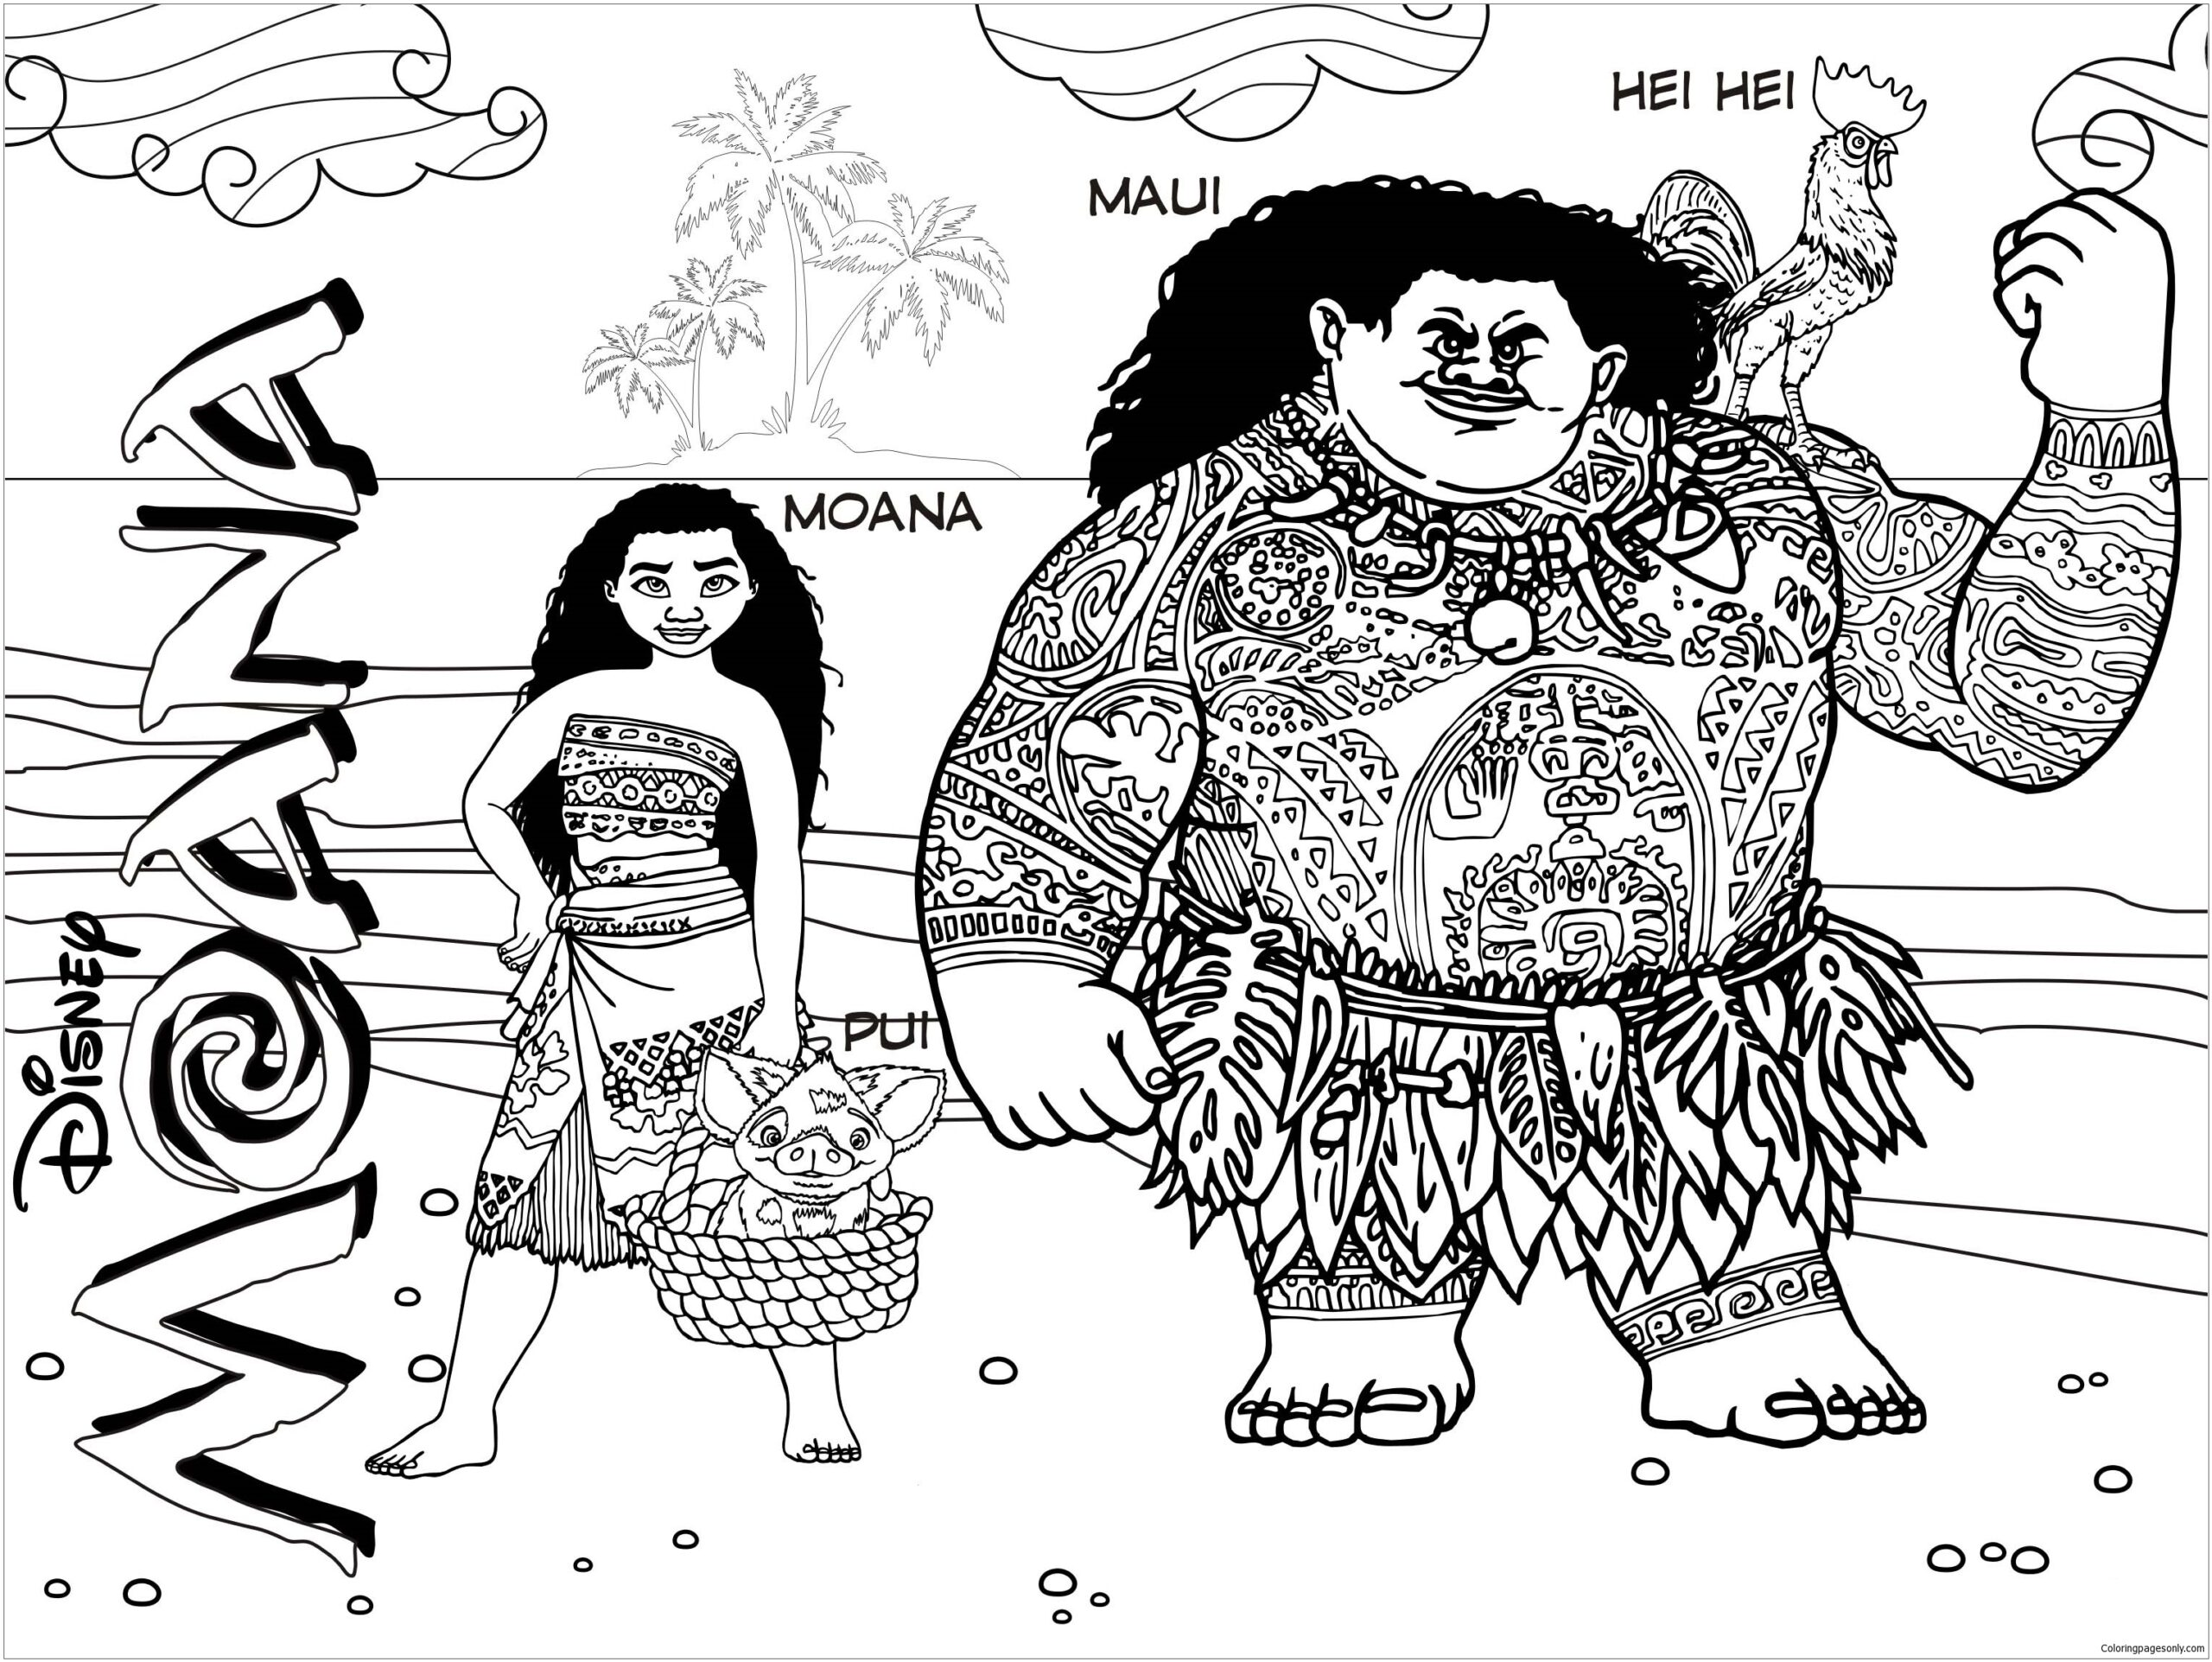 moana and coloring cartoons for kids adults fuschsia color clothing scribble fall mehndi coloring pages Maui Coloring Page